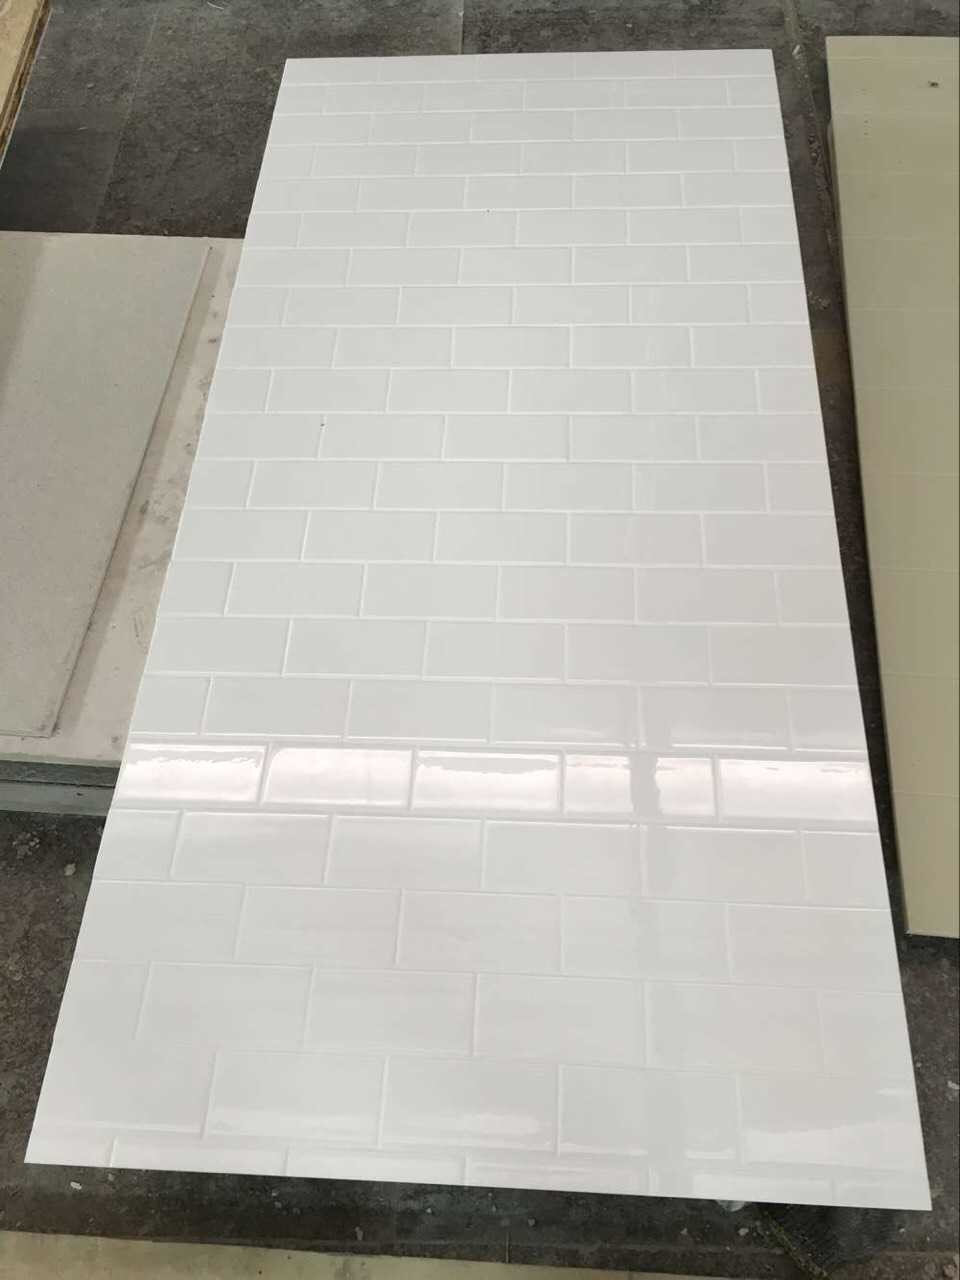 refinish cultured marble,marble top bath,marble colors for flooring,solid marble,marble products company,fake marble floor,solid granite shower walls,white artificial marble